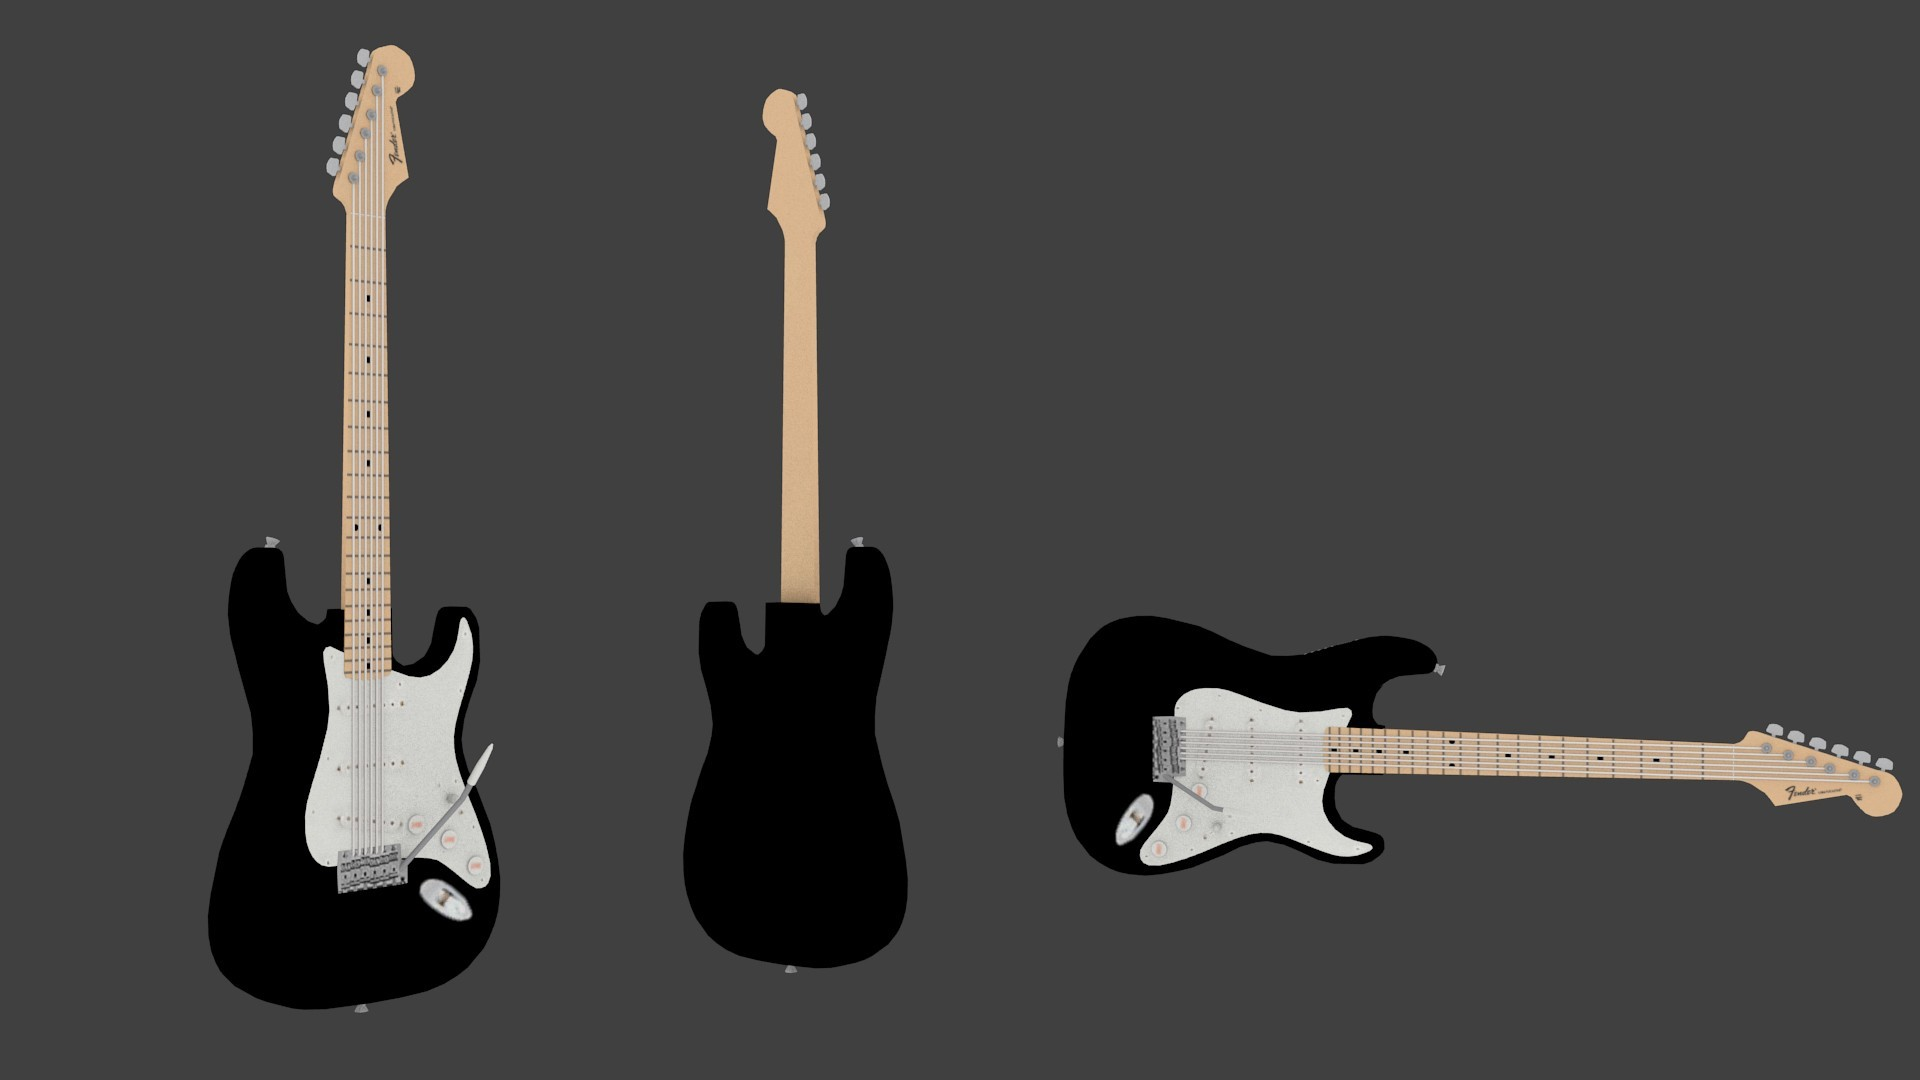 Fender Stratocaster with Sounds!